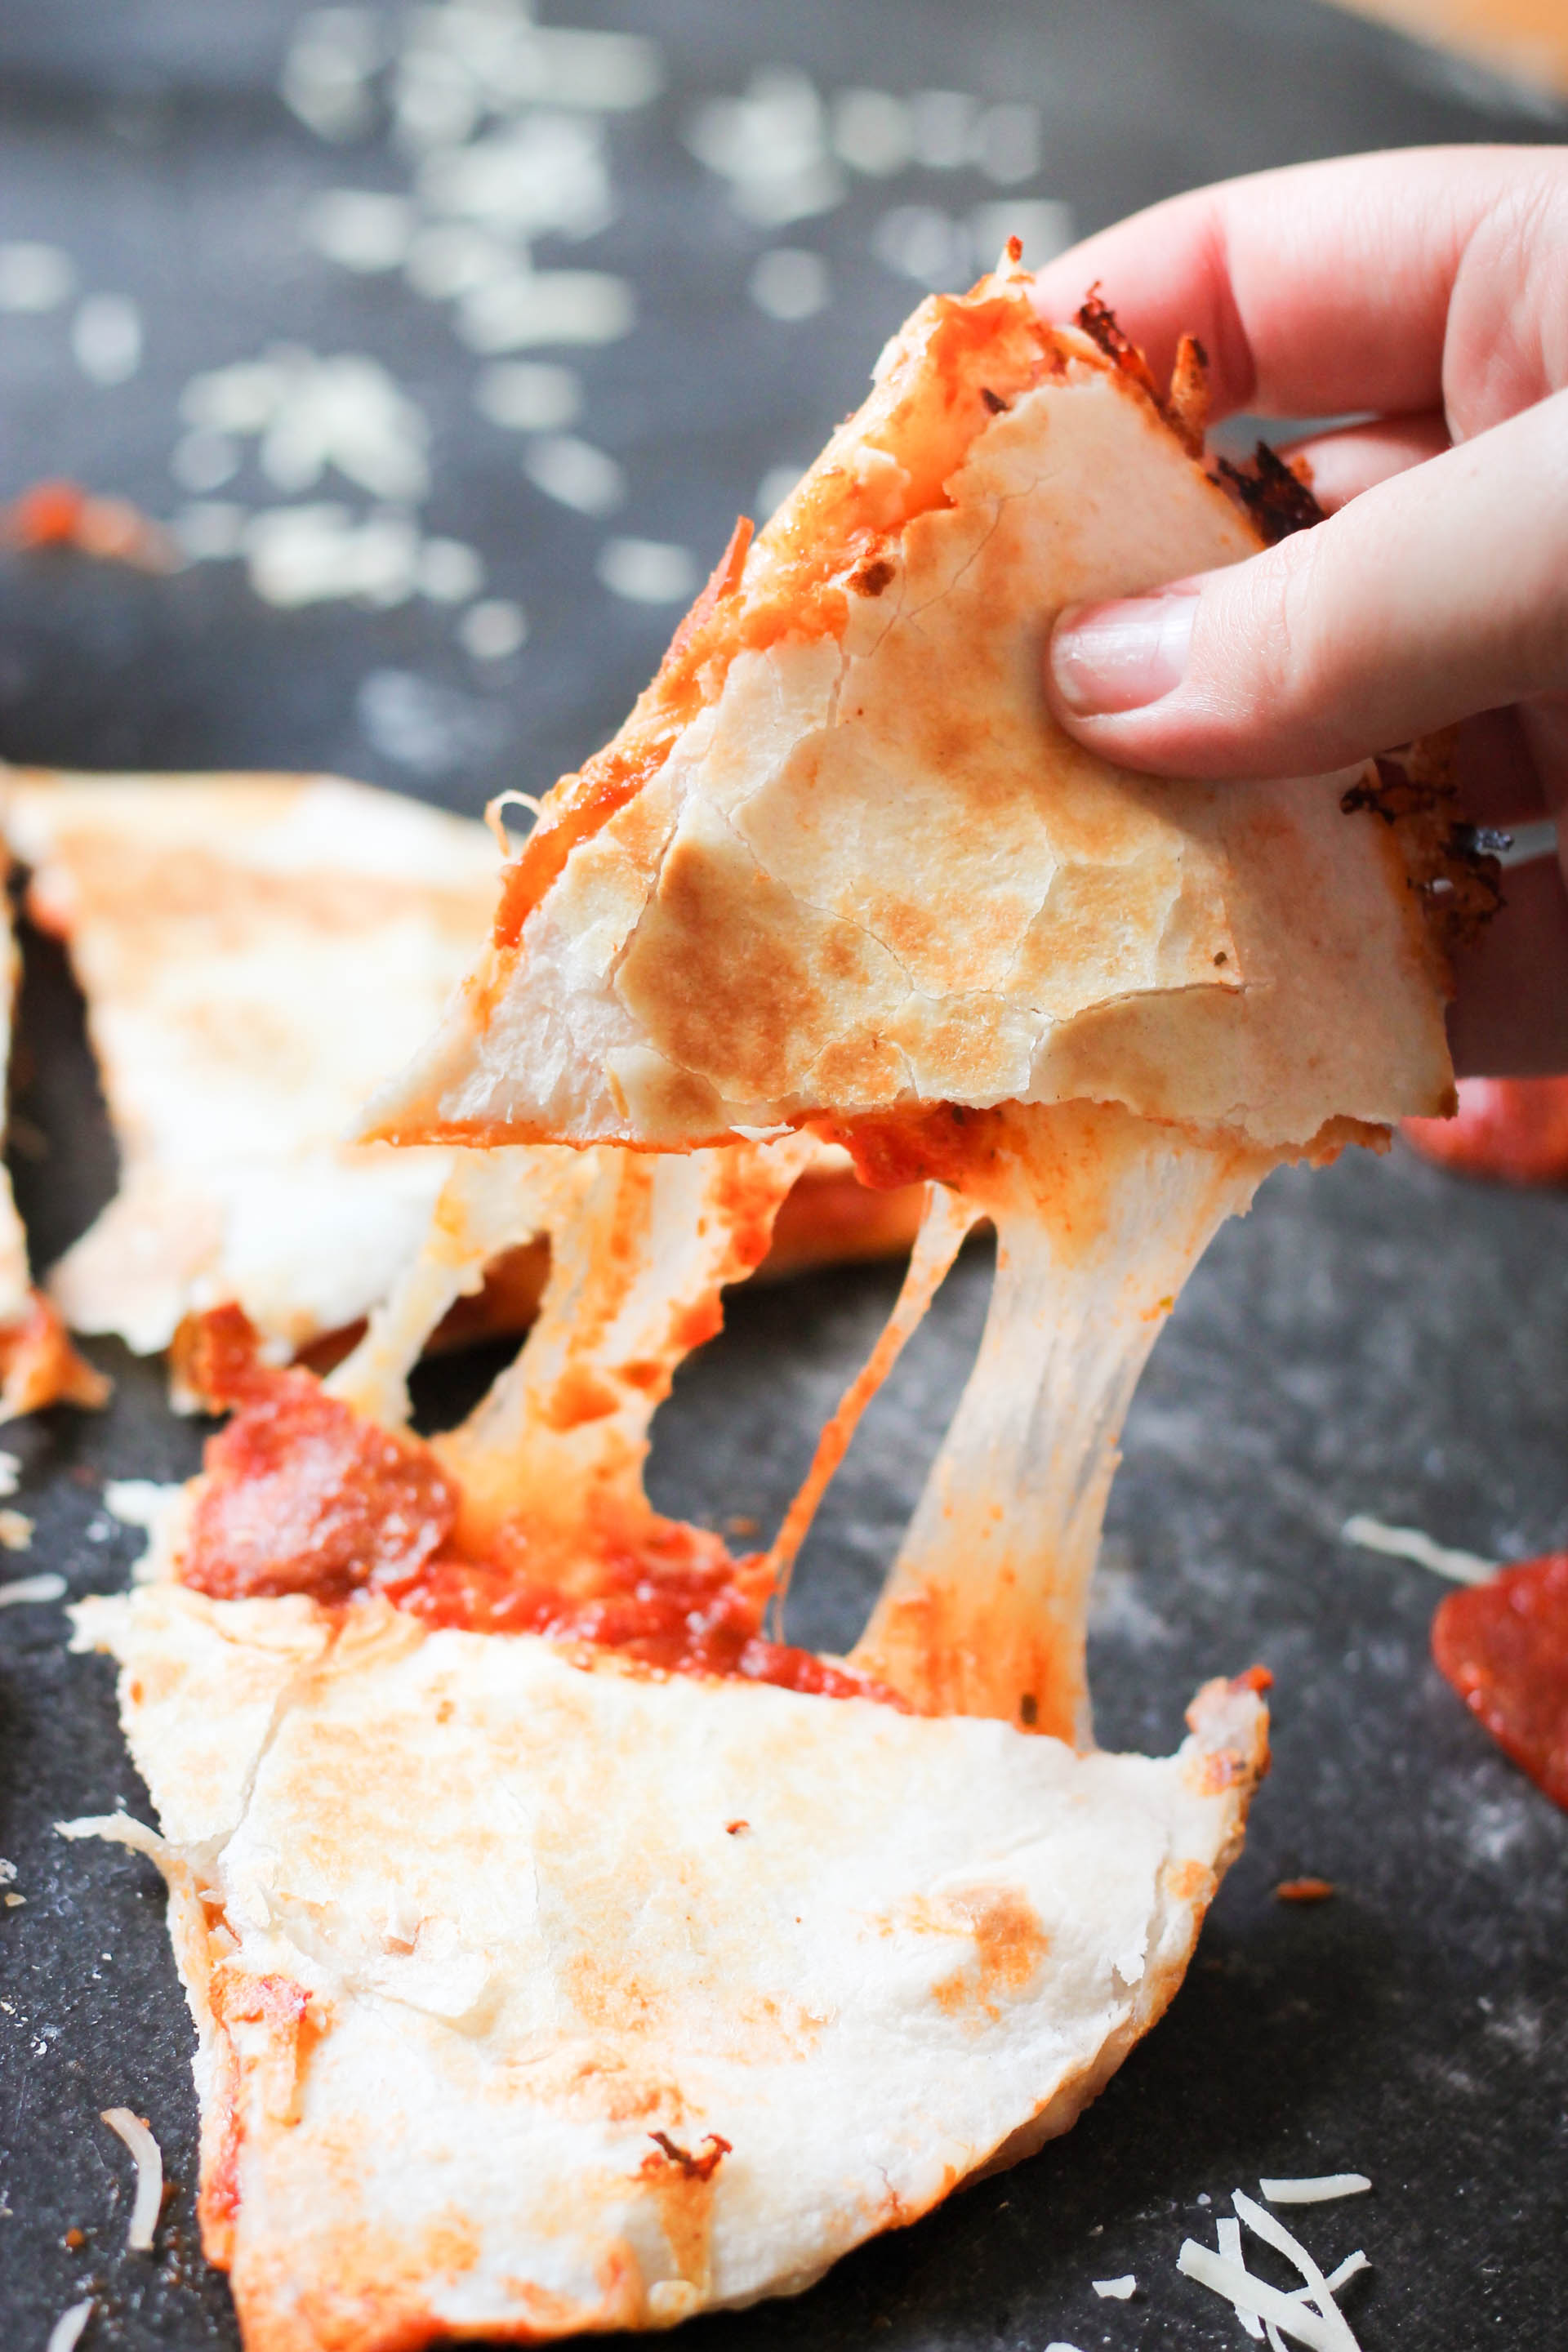 a triangle of easy pizza quesadillas being pulled apart to show gooey, melty cheese